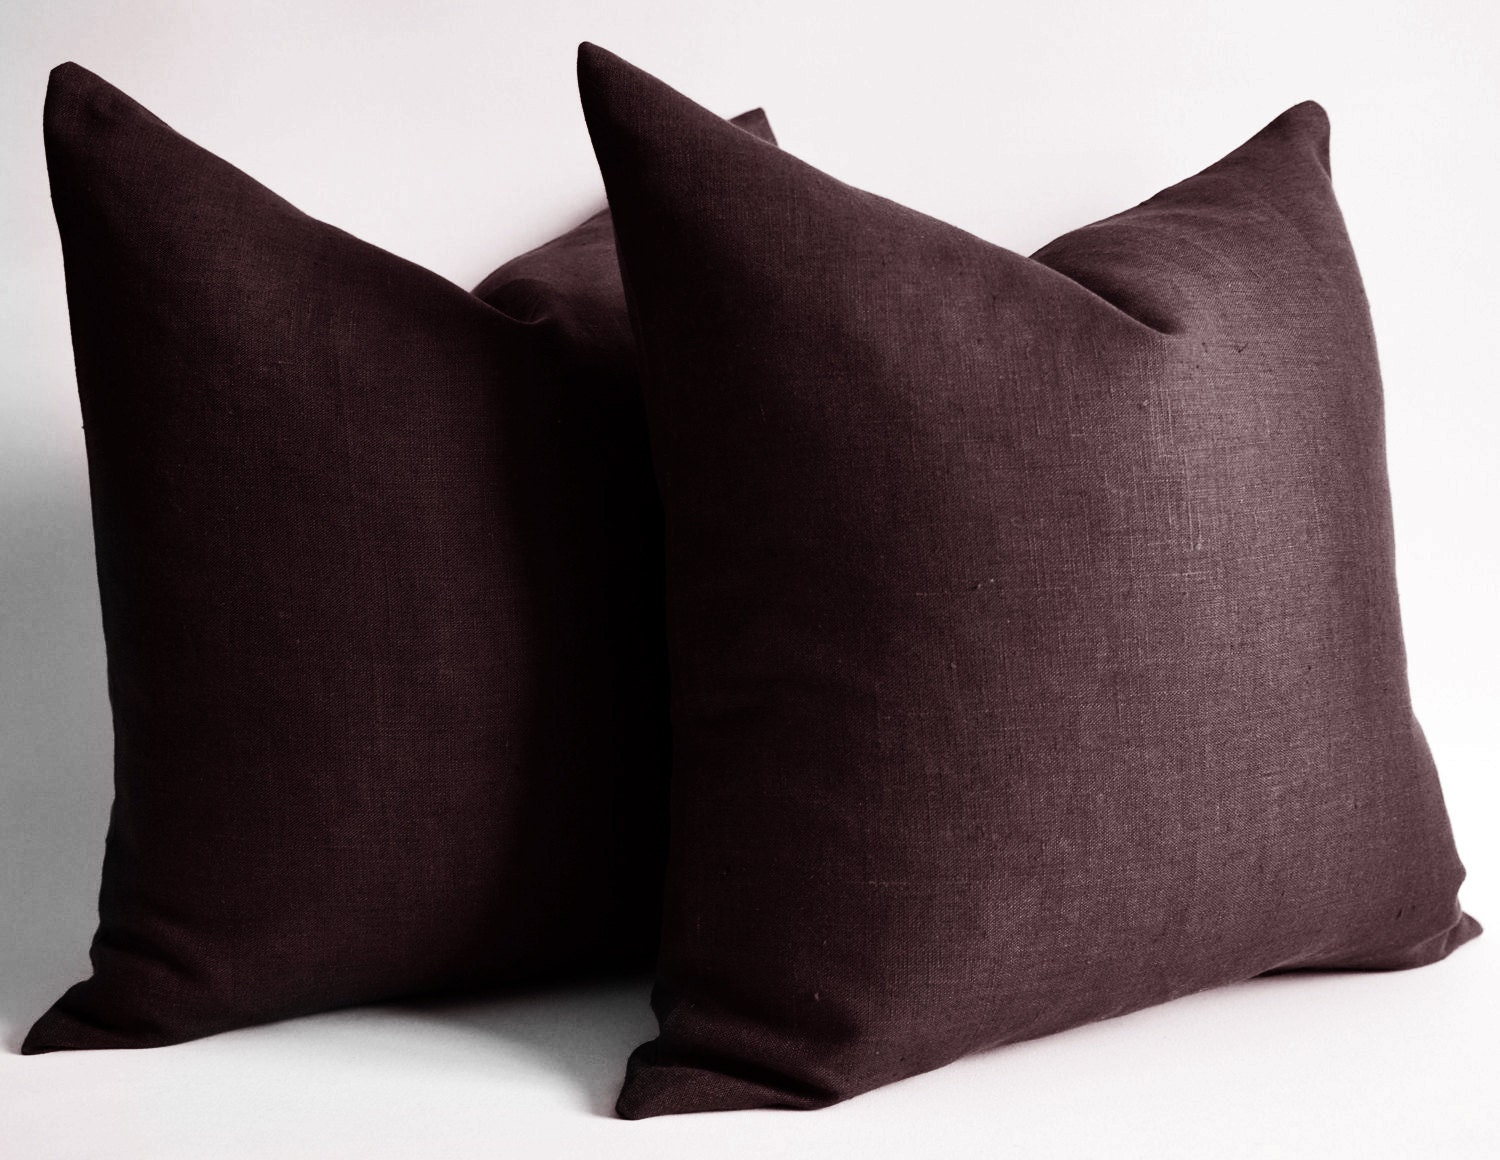 Sukan / SET of 2 Linen red brown throw pillows by sukanart